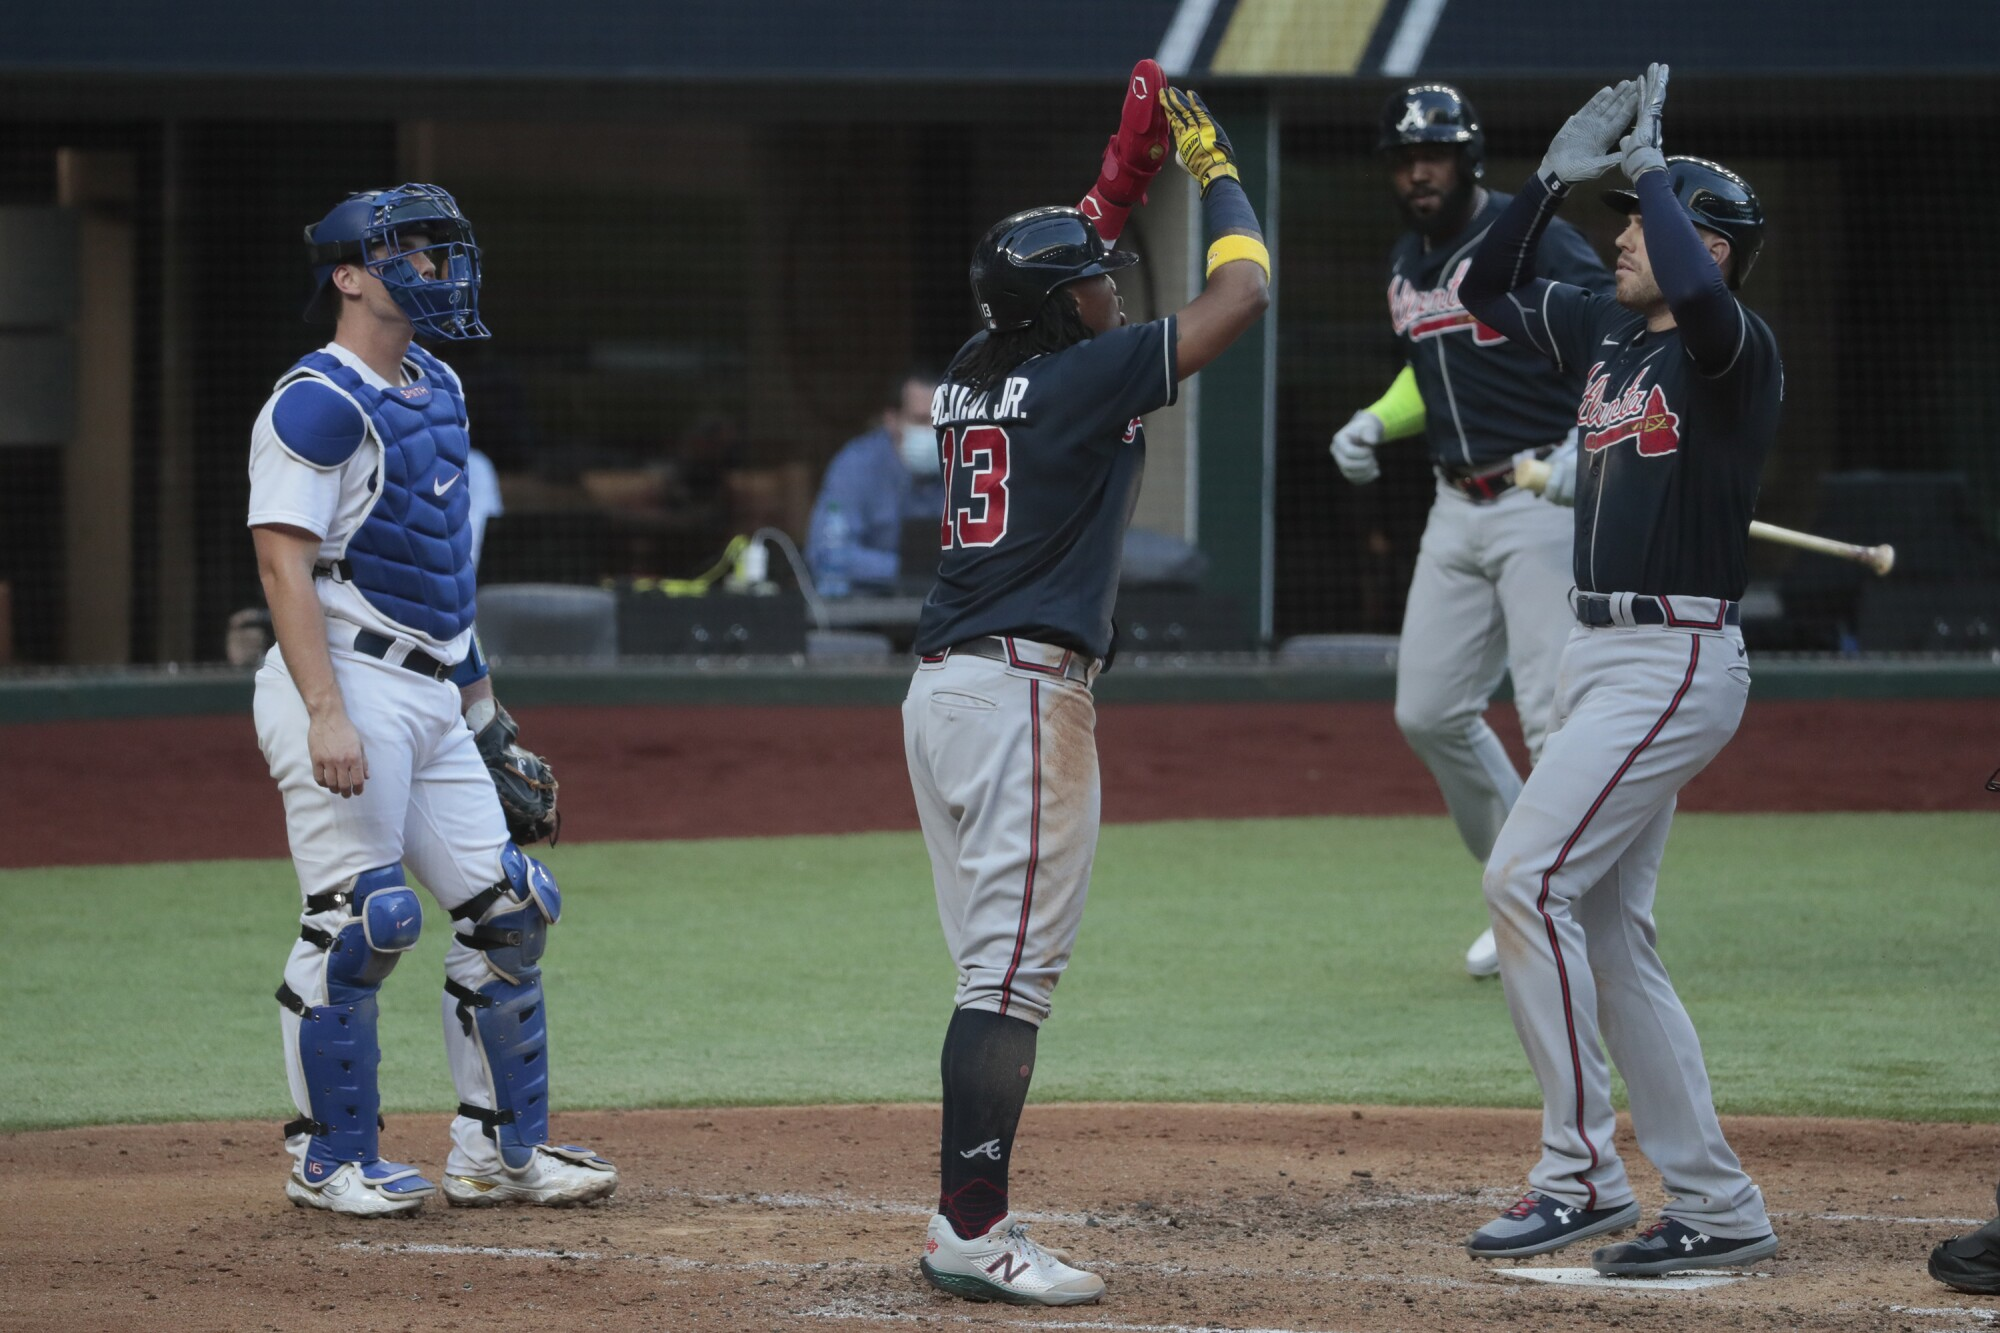 Atlanta's Freddie Freeman, right, celebrates with teammate Ronald Acuna Jr. after hitting a two-run home run.